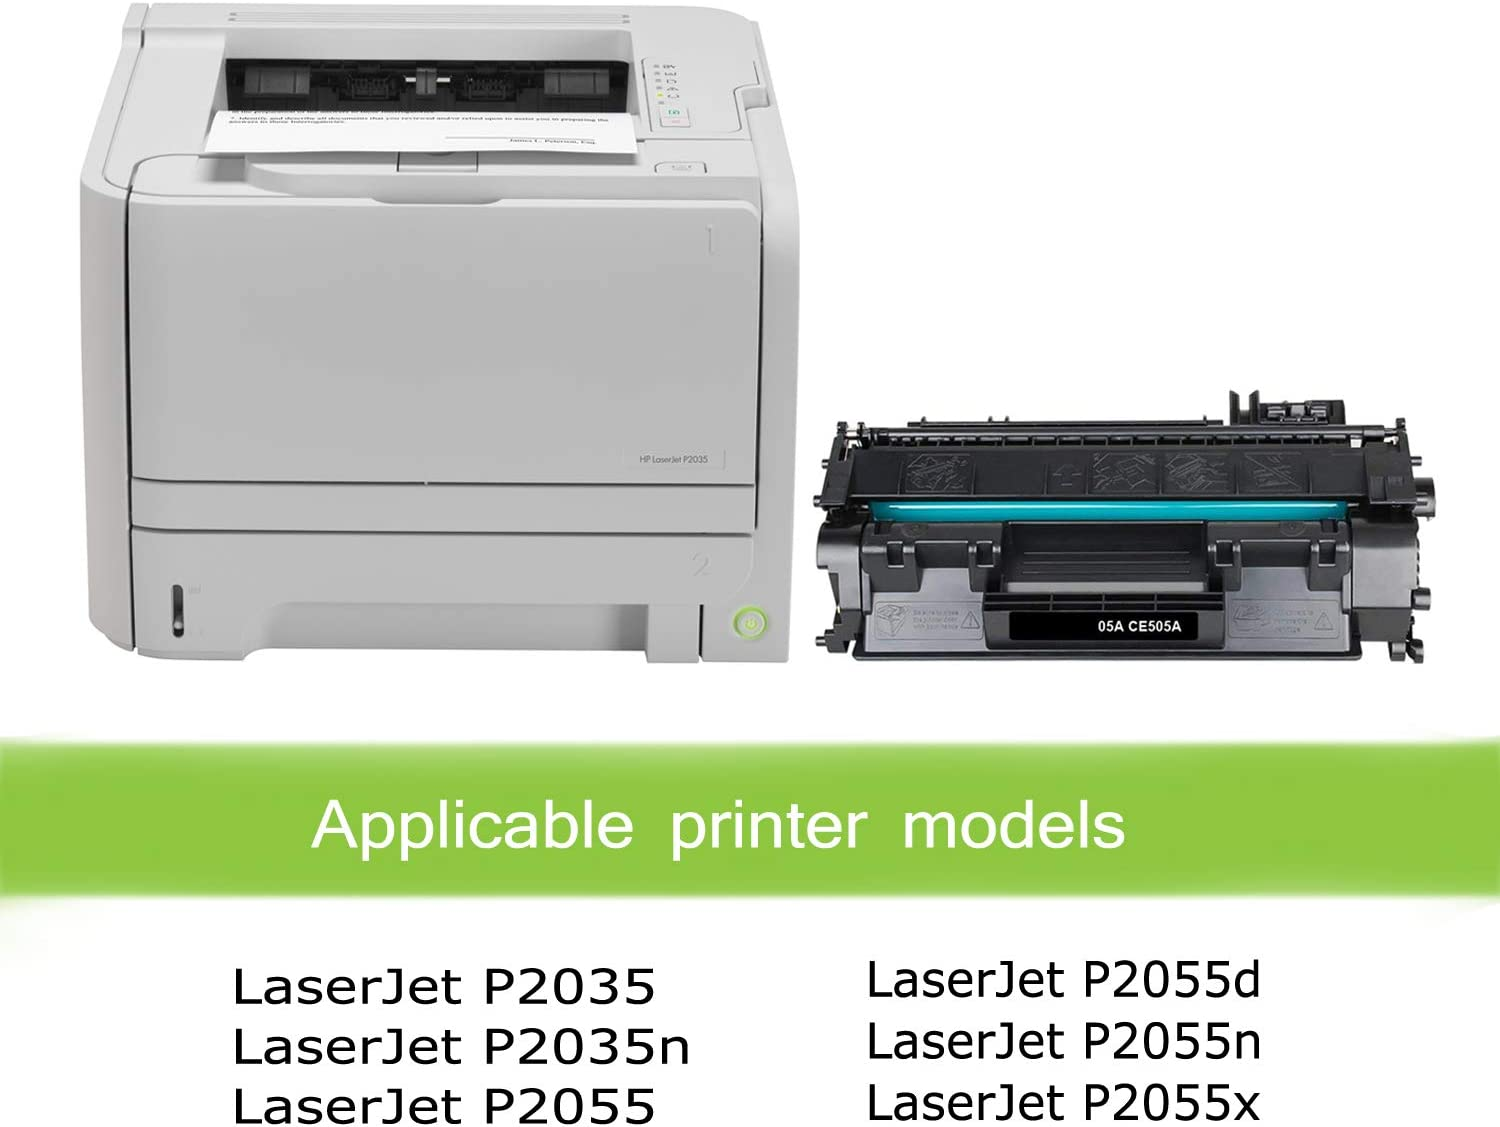 P2055d P2055n Black, 3-Pack P2035n Awesometoner Compatible Toner Cartridge Replacement for HP CE505A MICR use with Laserjet P2035 P2055x P2055